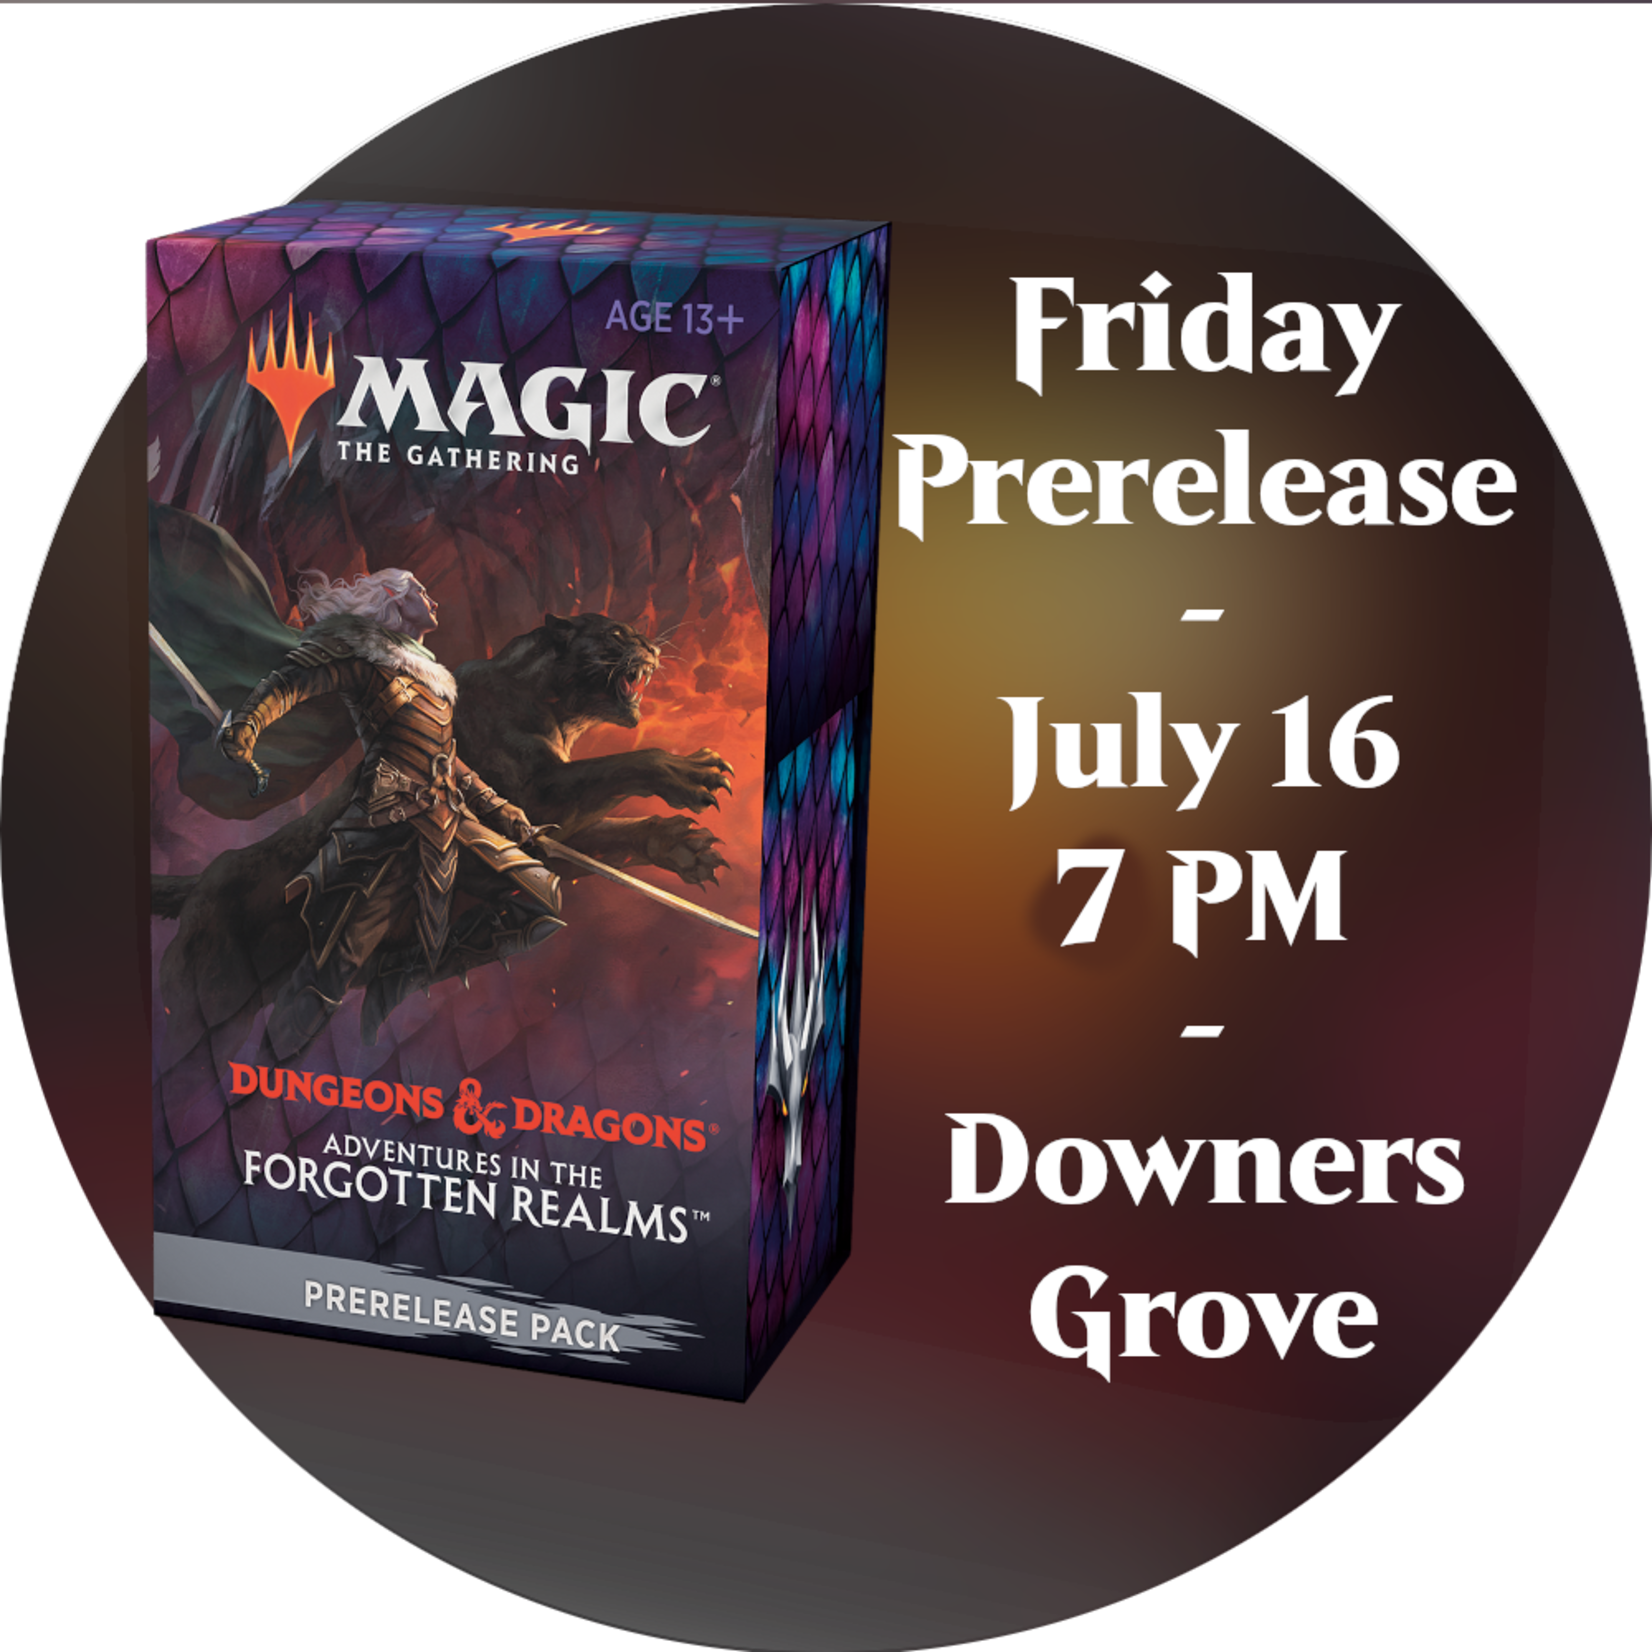 Admission: Forgotten Realms Friday Sealed Deck Prerelease (7 PM, Downers Grove)